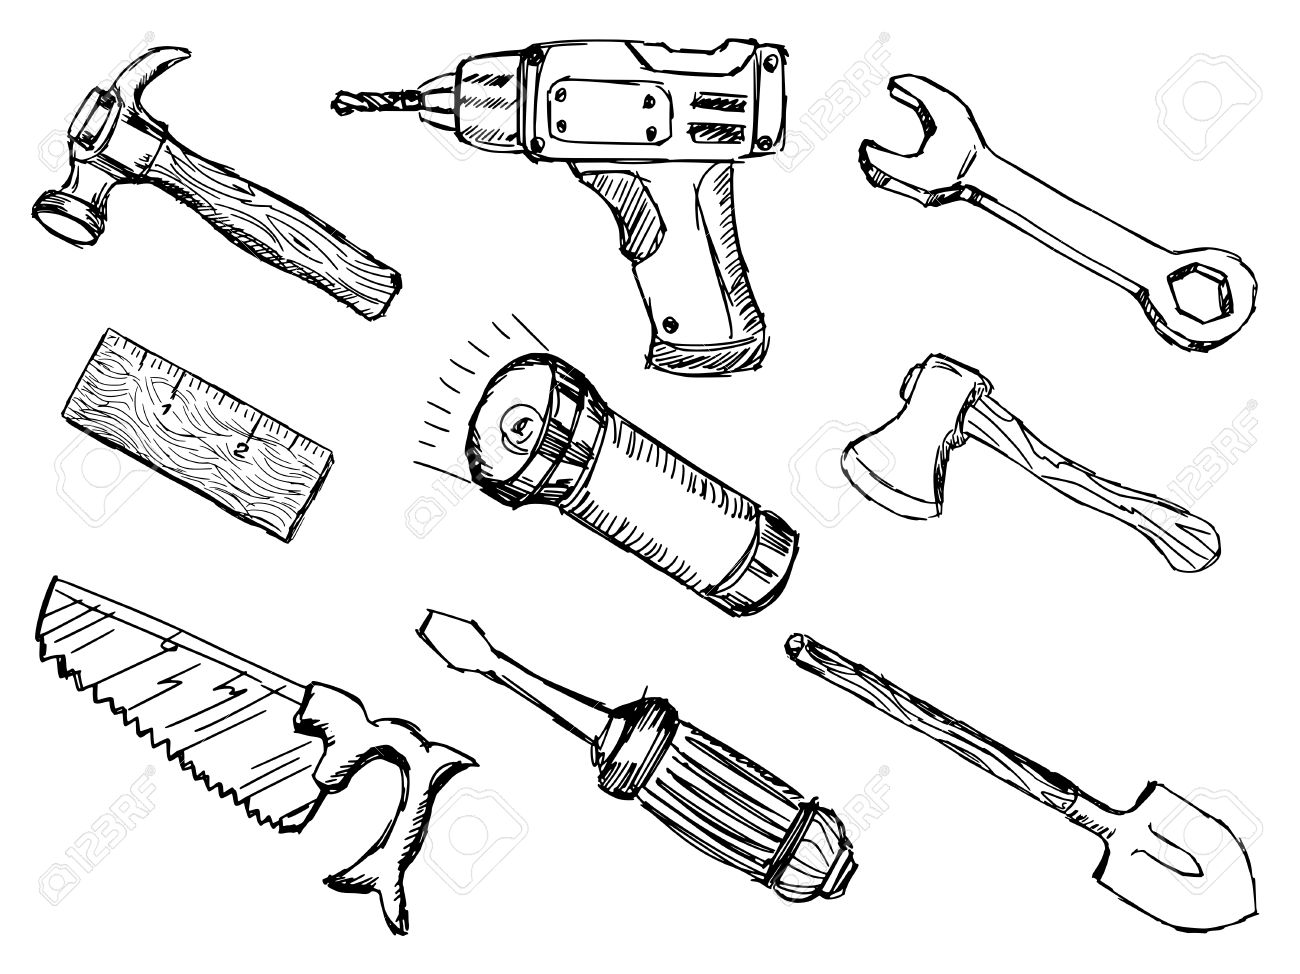 Hand Tools Sketch At Paintingvalley